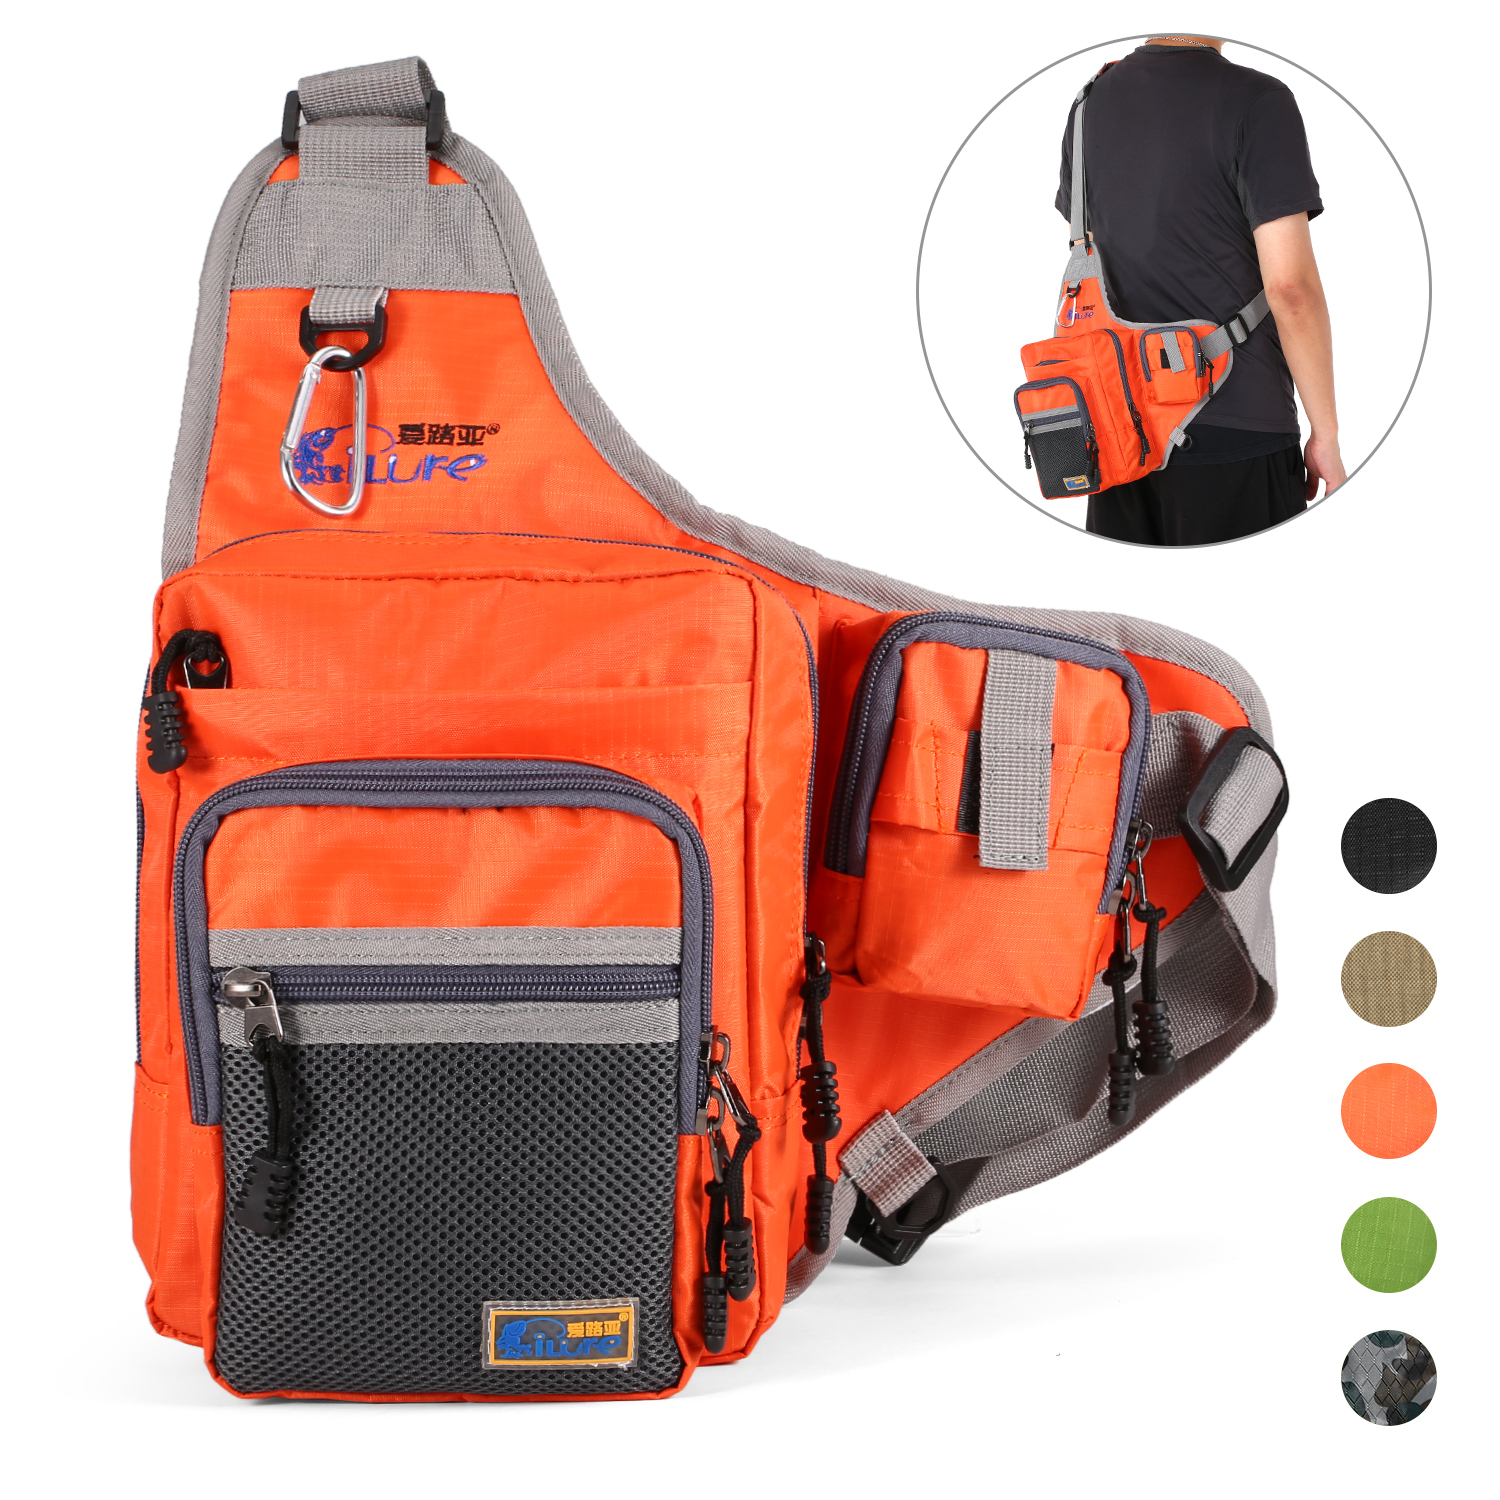 Details about  /iLure Fishing Bag Canvas Fishing Tool Pack Reel Lure Tackle Bag Waterproof I5X8